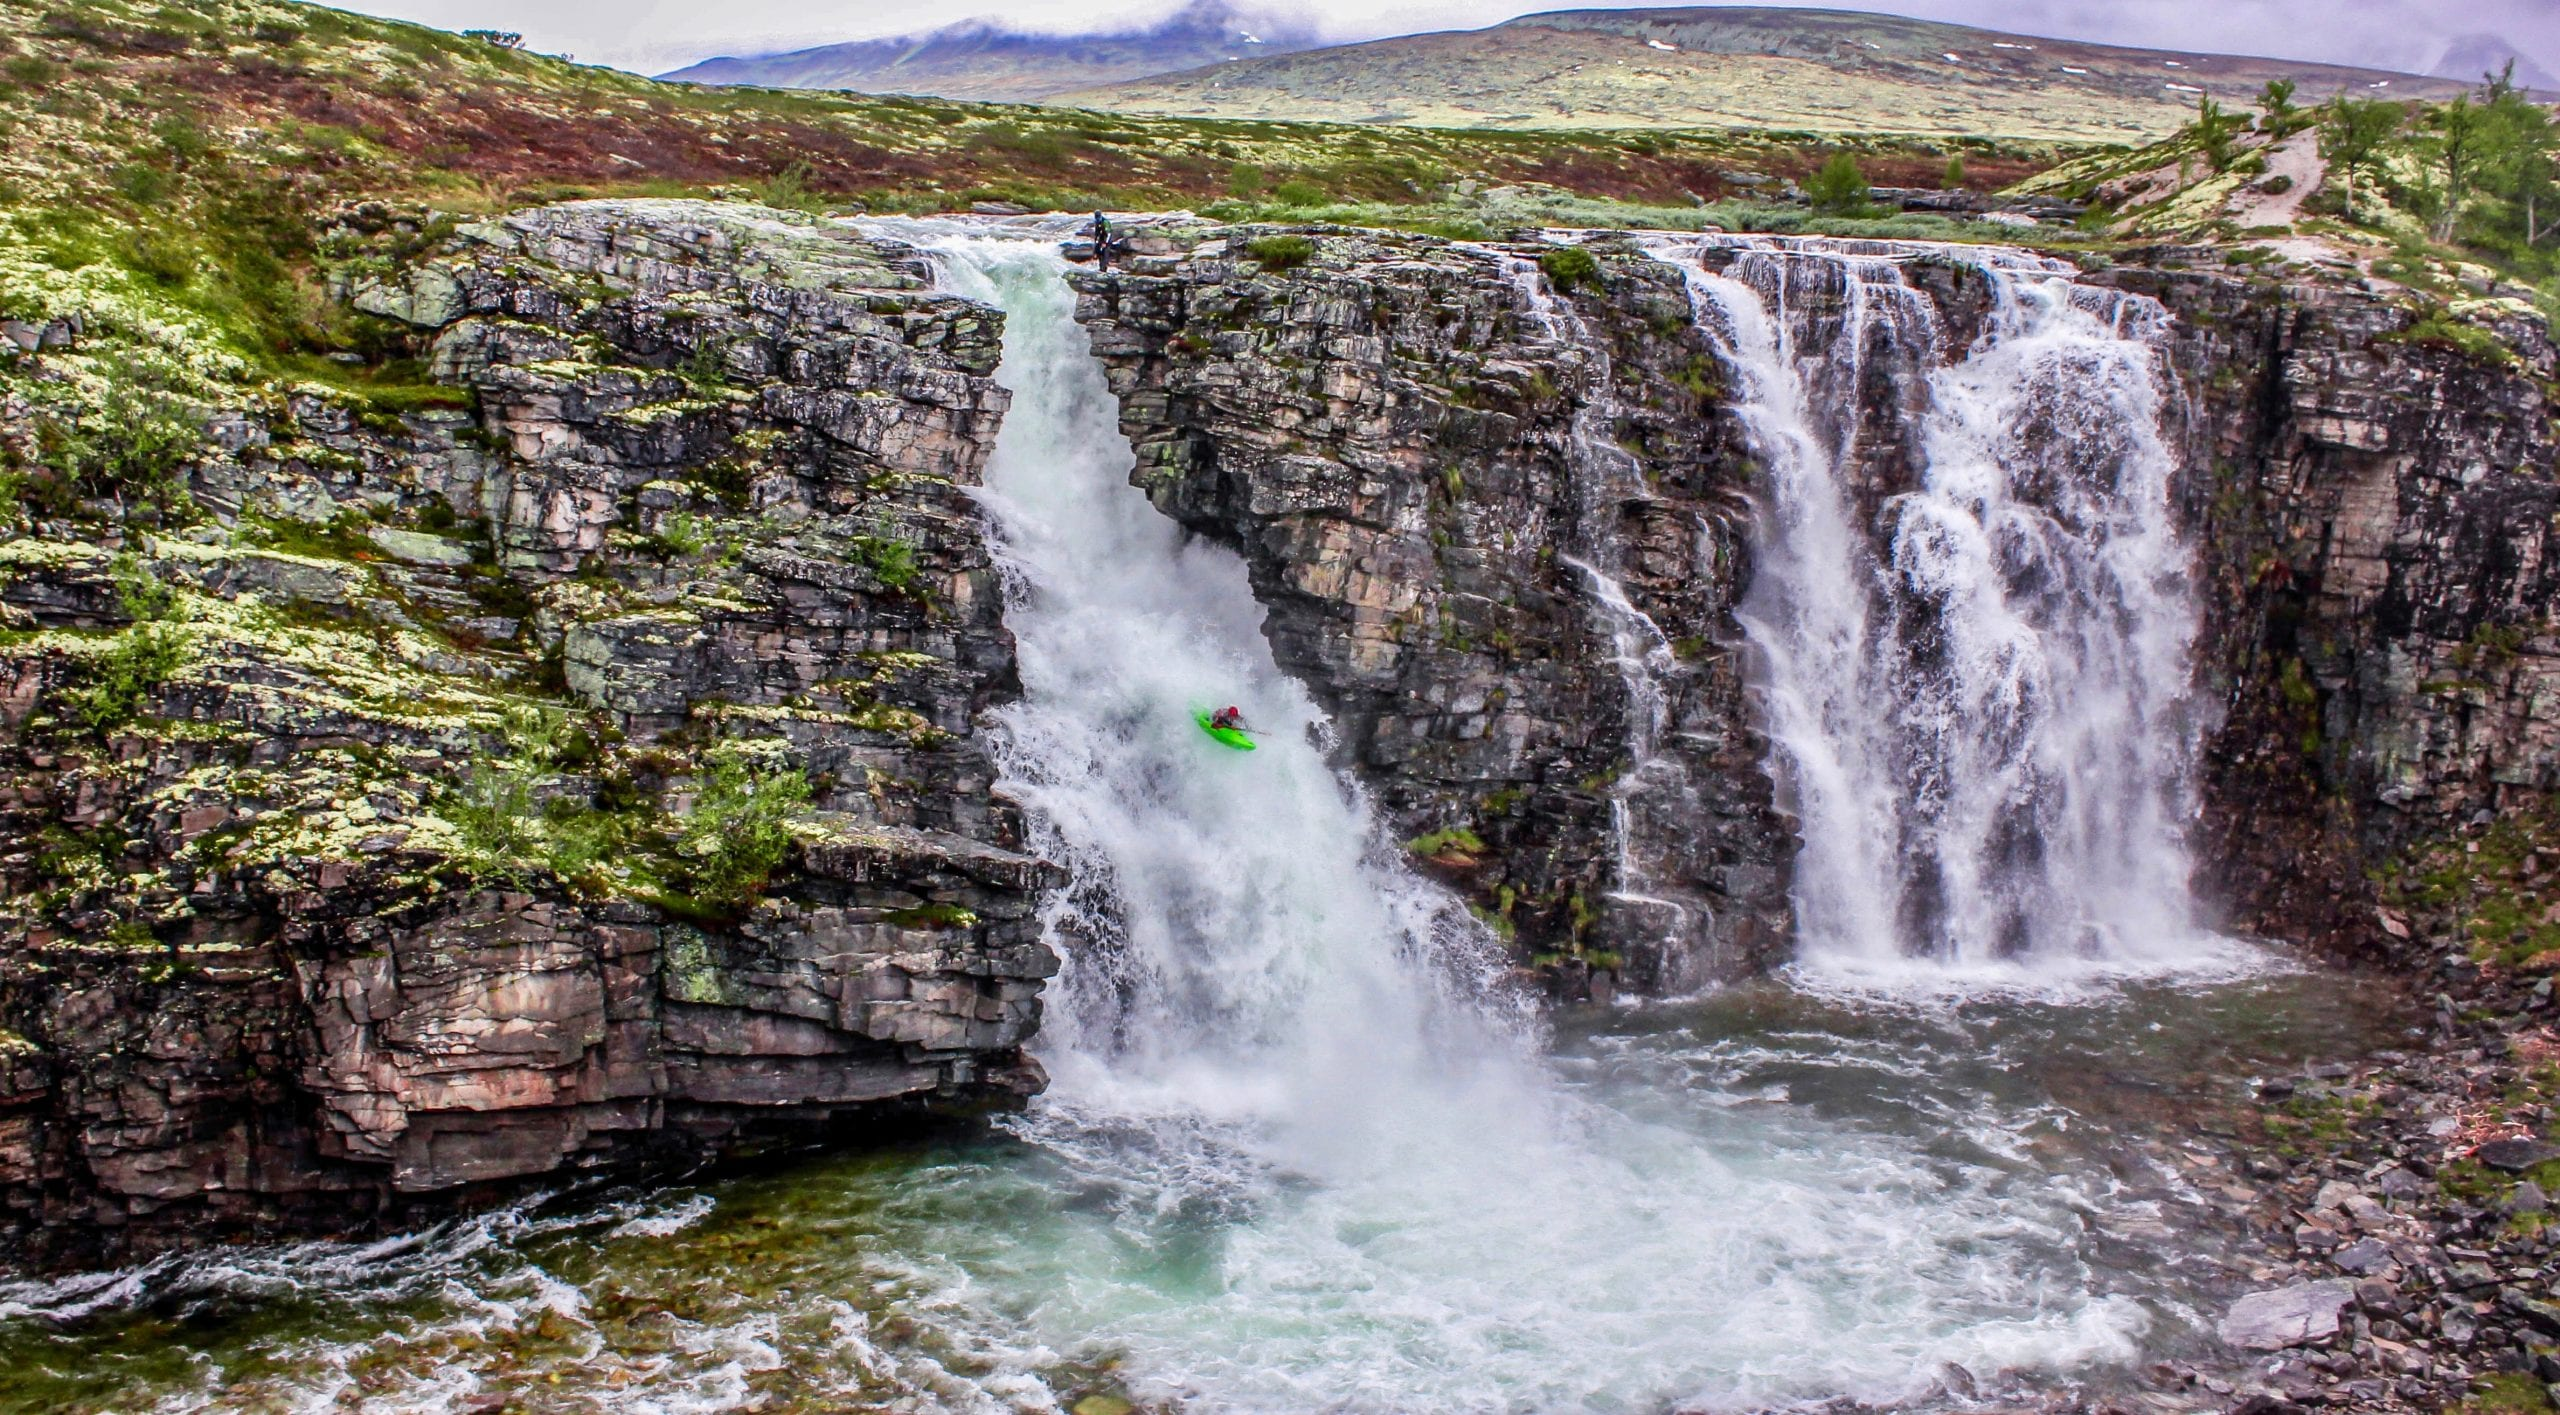 Top 4 Best Whitewater Kayaking Rivers in Norway